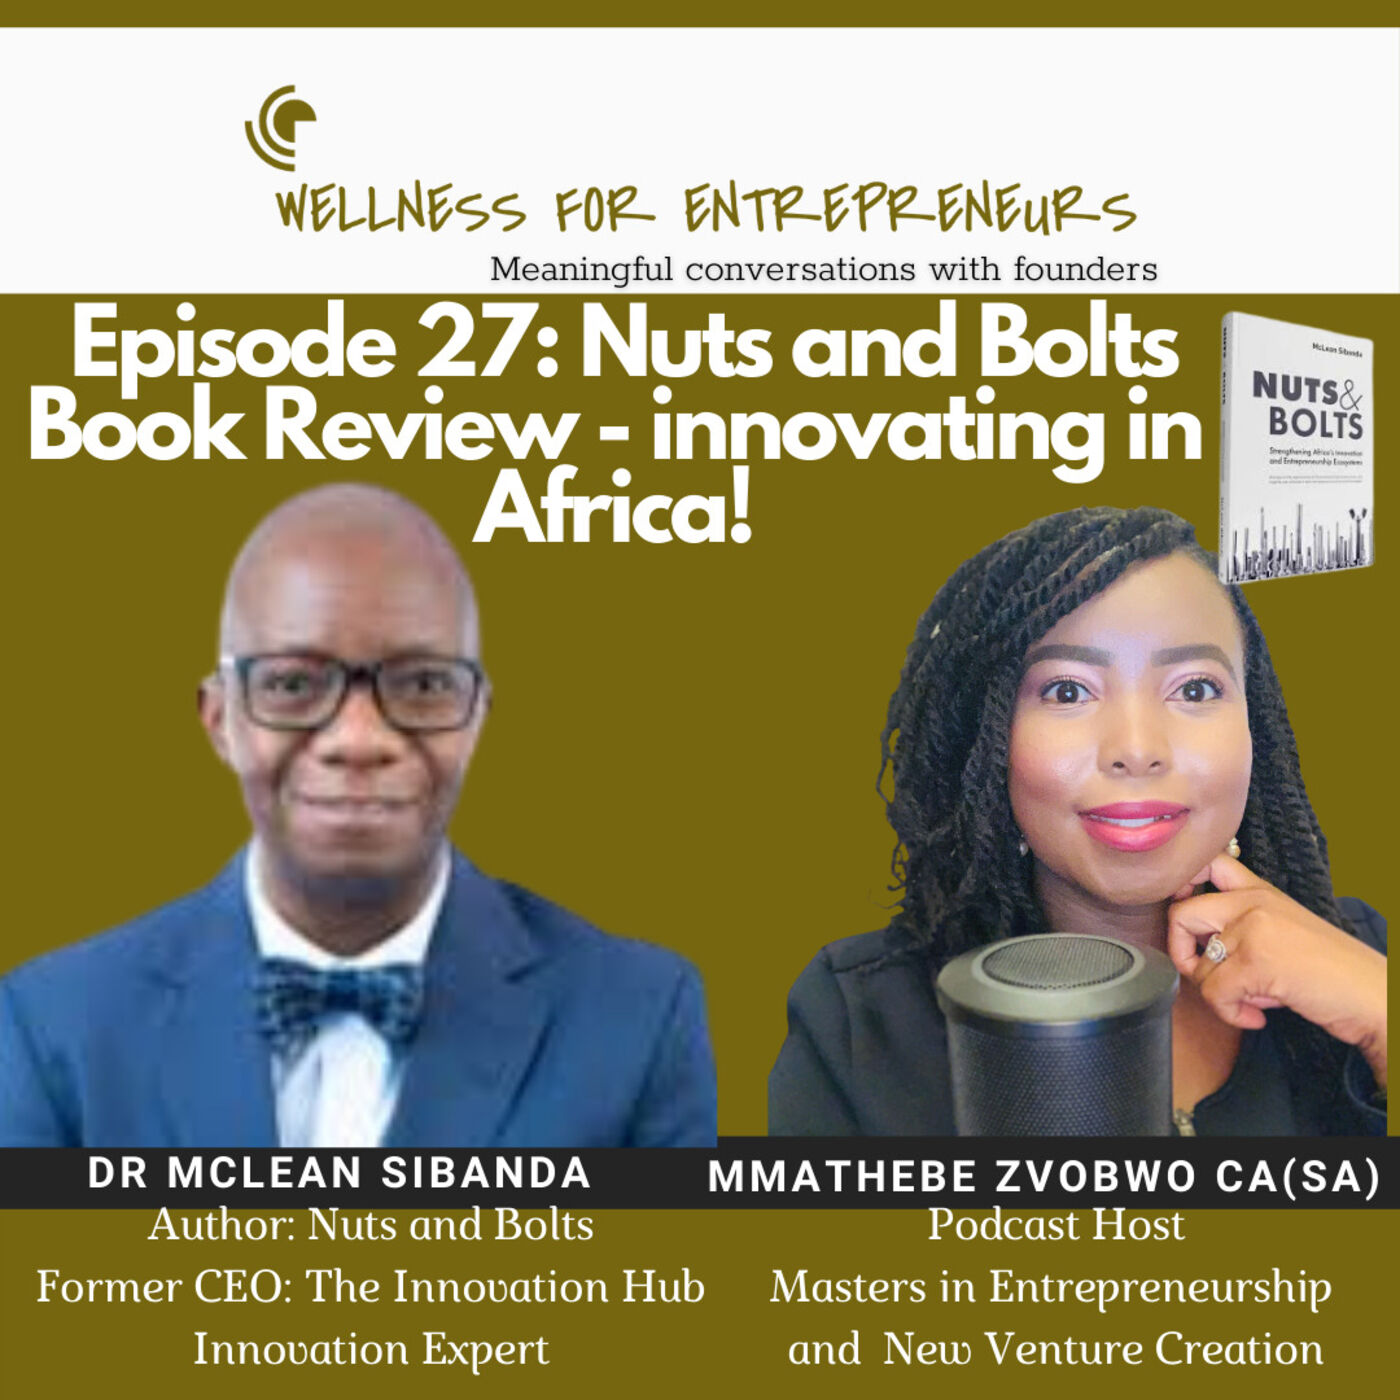 Episode 27: Nuts and Bolts Book Review - innovating in Africa, with Dr. McLean Sibanda